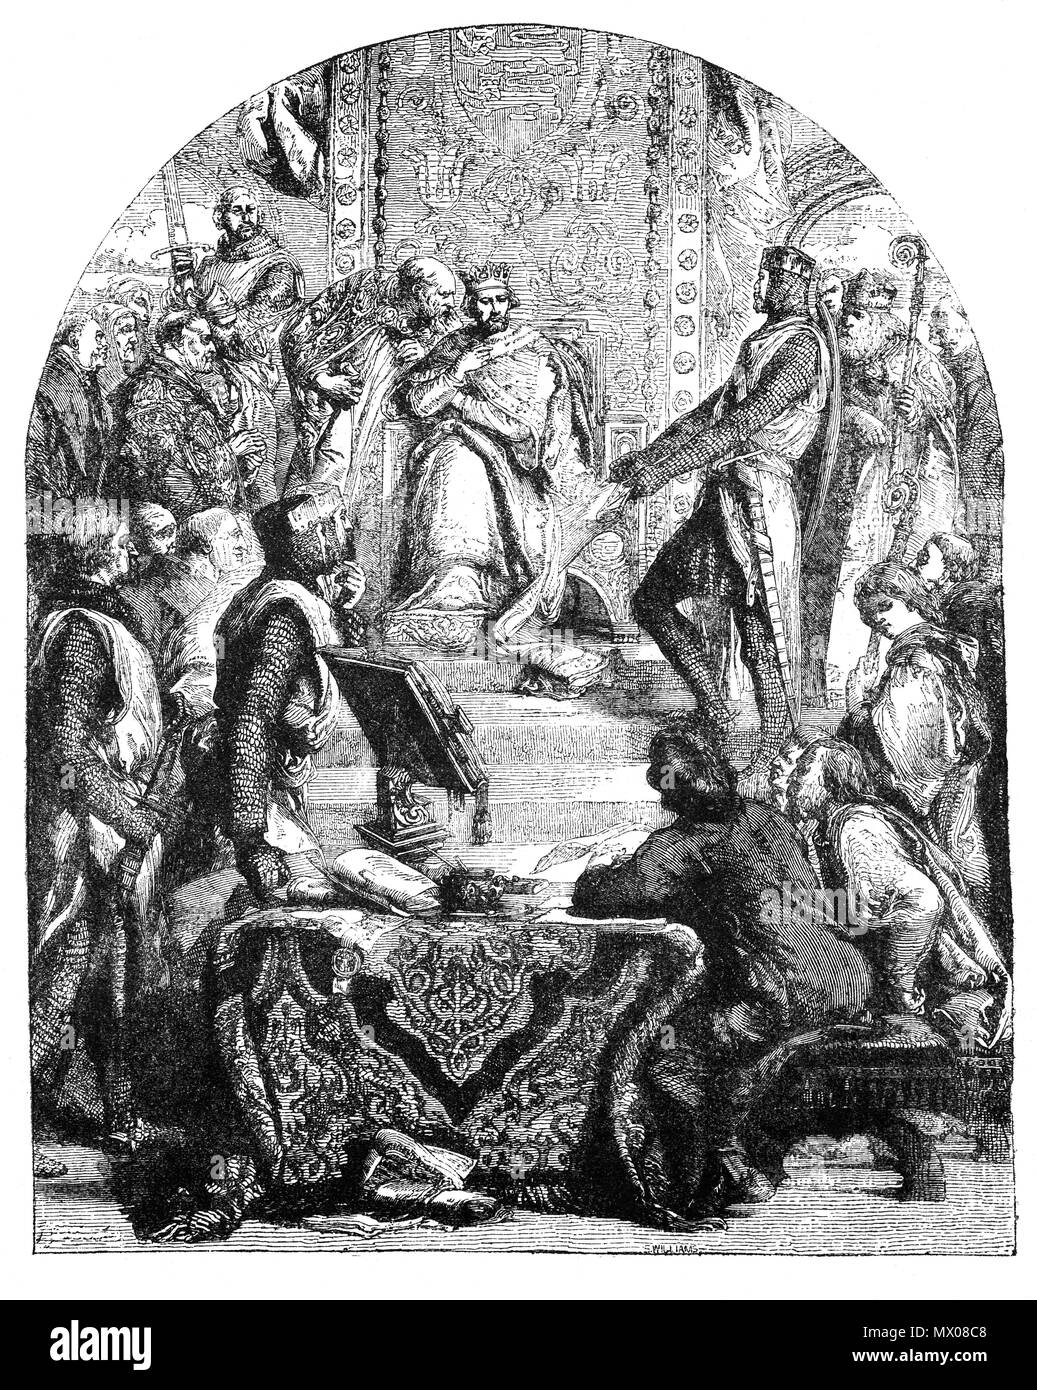 Henry III (1207-1272), was critically important to the history of Magna Carta. Following King John's death in 1216 Henry, just a young boy aged 9, inherited the throne  in the midst of civil war and on the verge of defeat to the French Prince Louis (later King Louis IX). The 'minority government' led by William Marshal, attempted to tempt the rebel barons back to Henry's side by a re-issue of Magna Carta conceding  the rights the rebel barons had been fighting for.  On 11 February 1225 King Henry III issued what became the final and definitive version of Magna Carta. - Stock Image